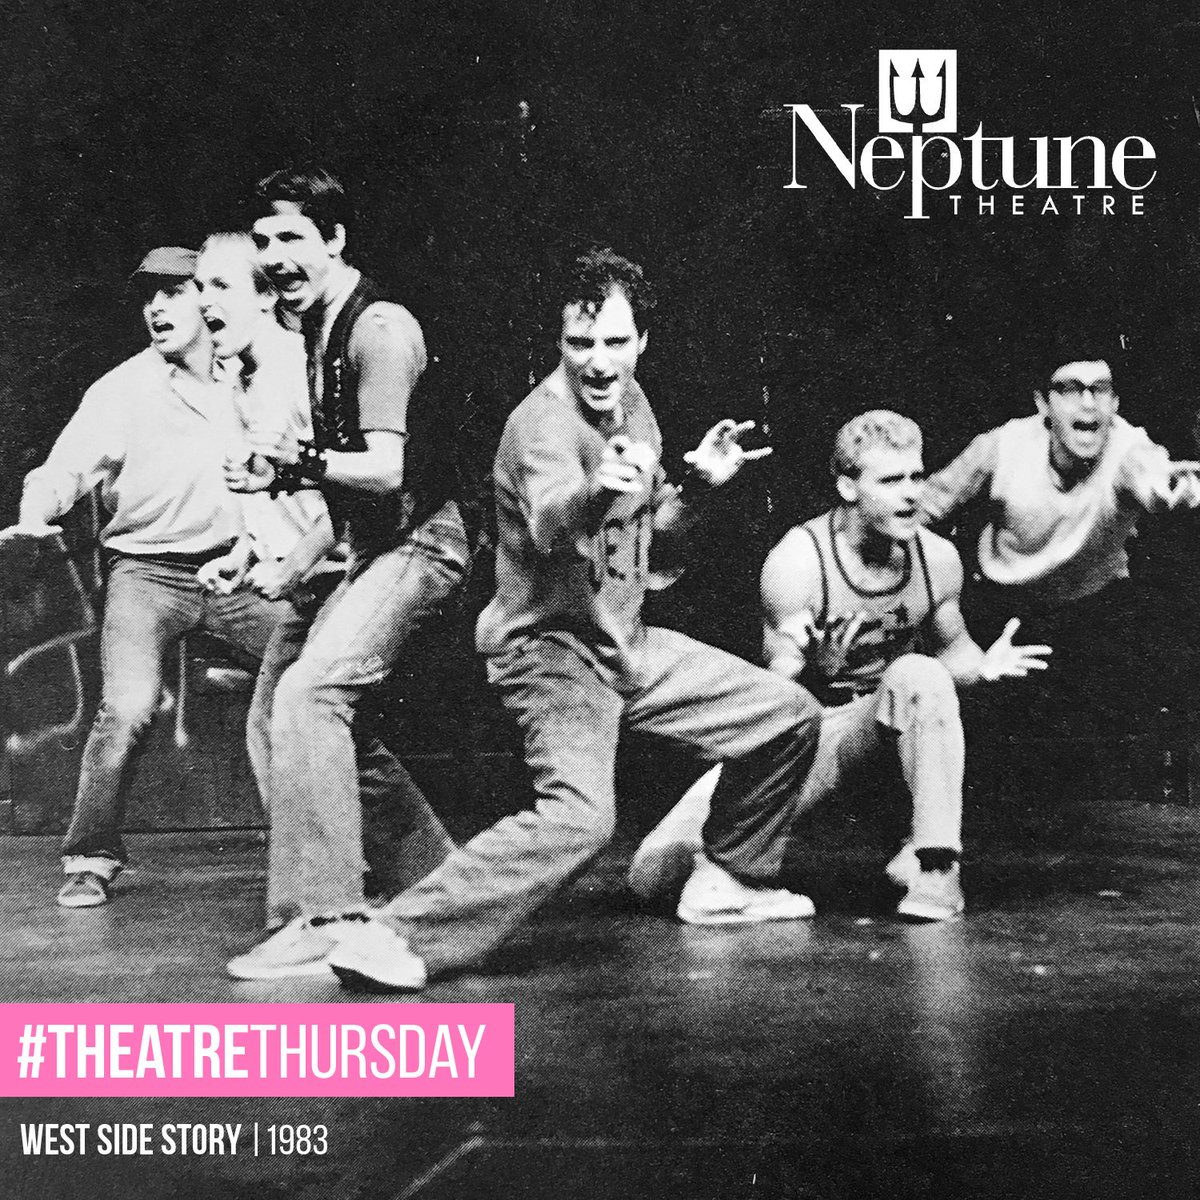 #TheatreThursday Throwback from our 1983 production of West Side Story - front and centre is @KimFCoates! #TBT #HFX https://t.co/3Dlmp3kpuc